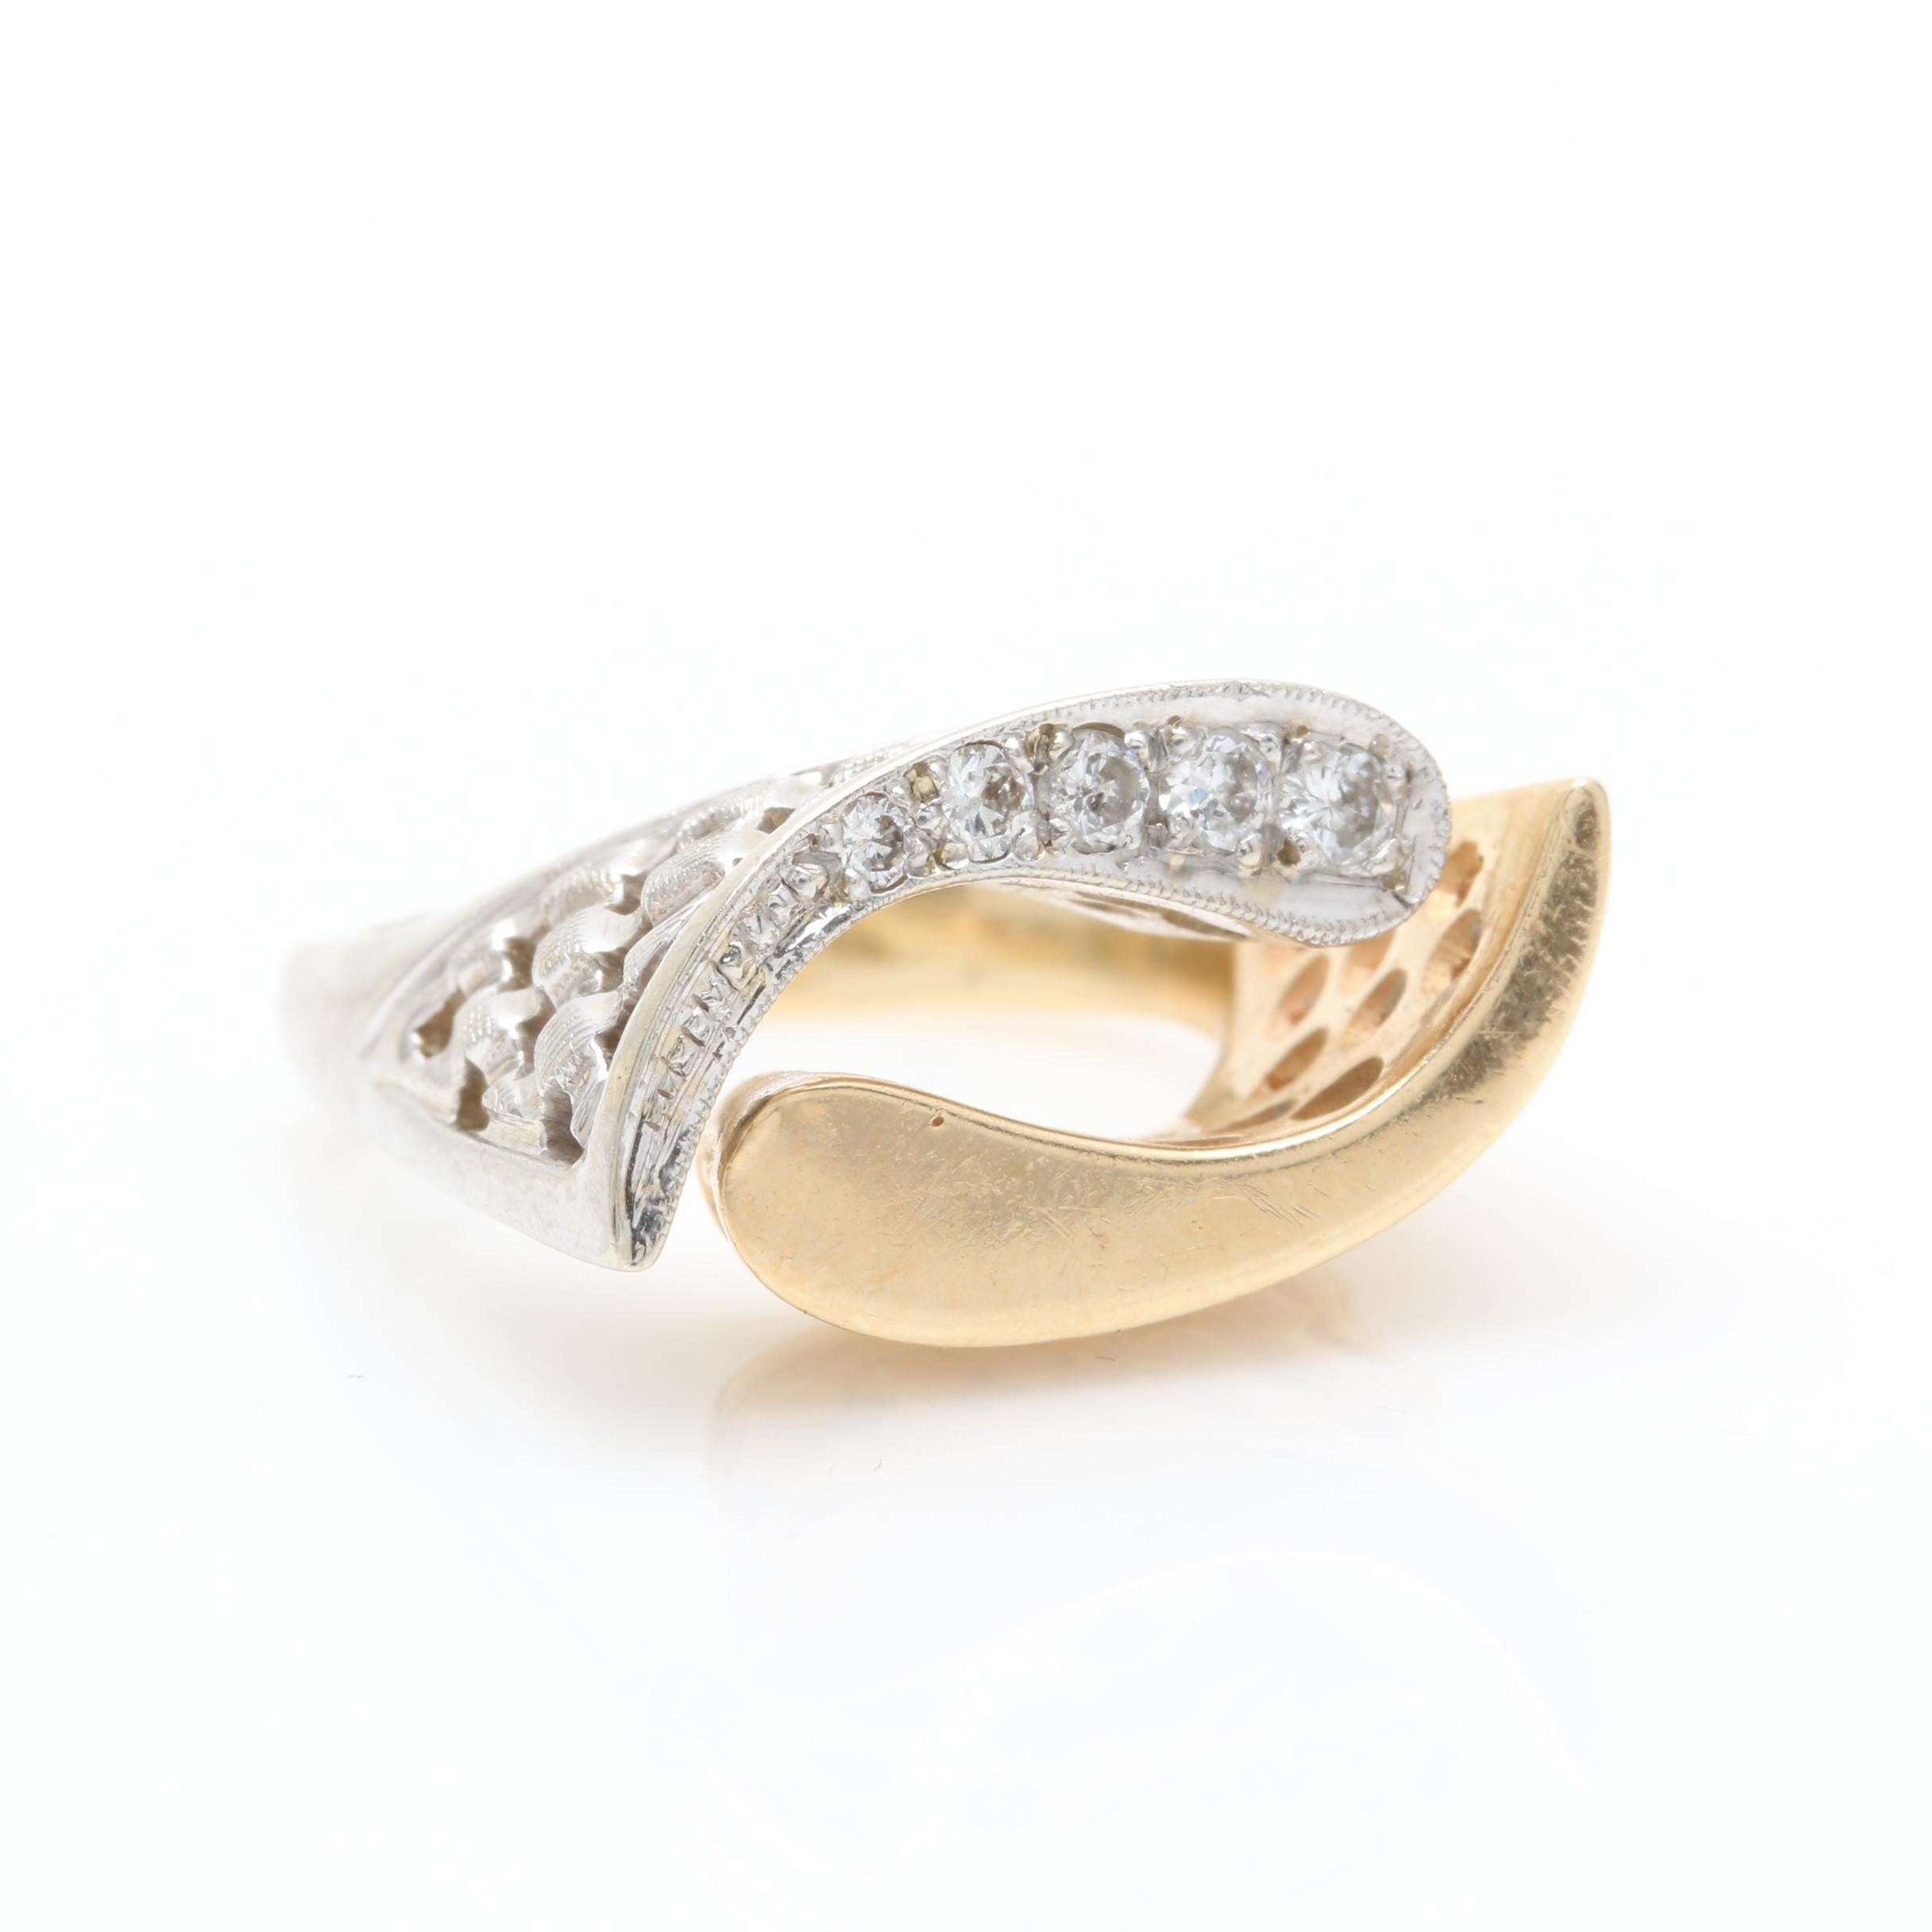 14K Yellow Gold and White Gold Diamond European Shank Ring